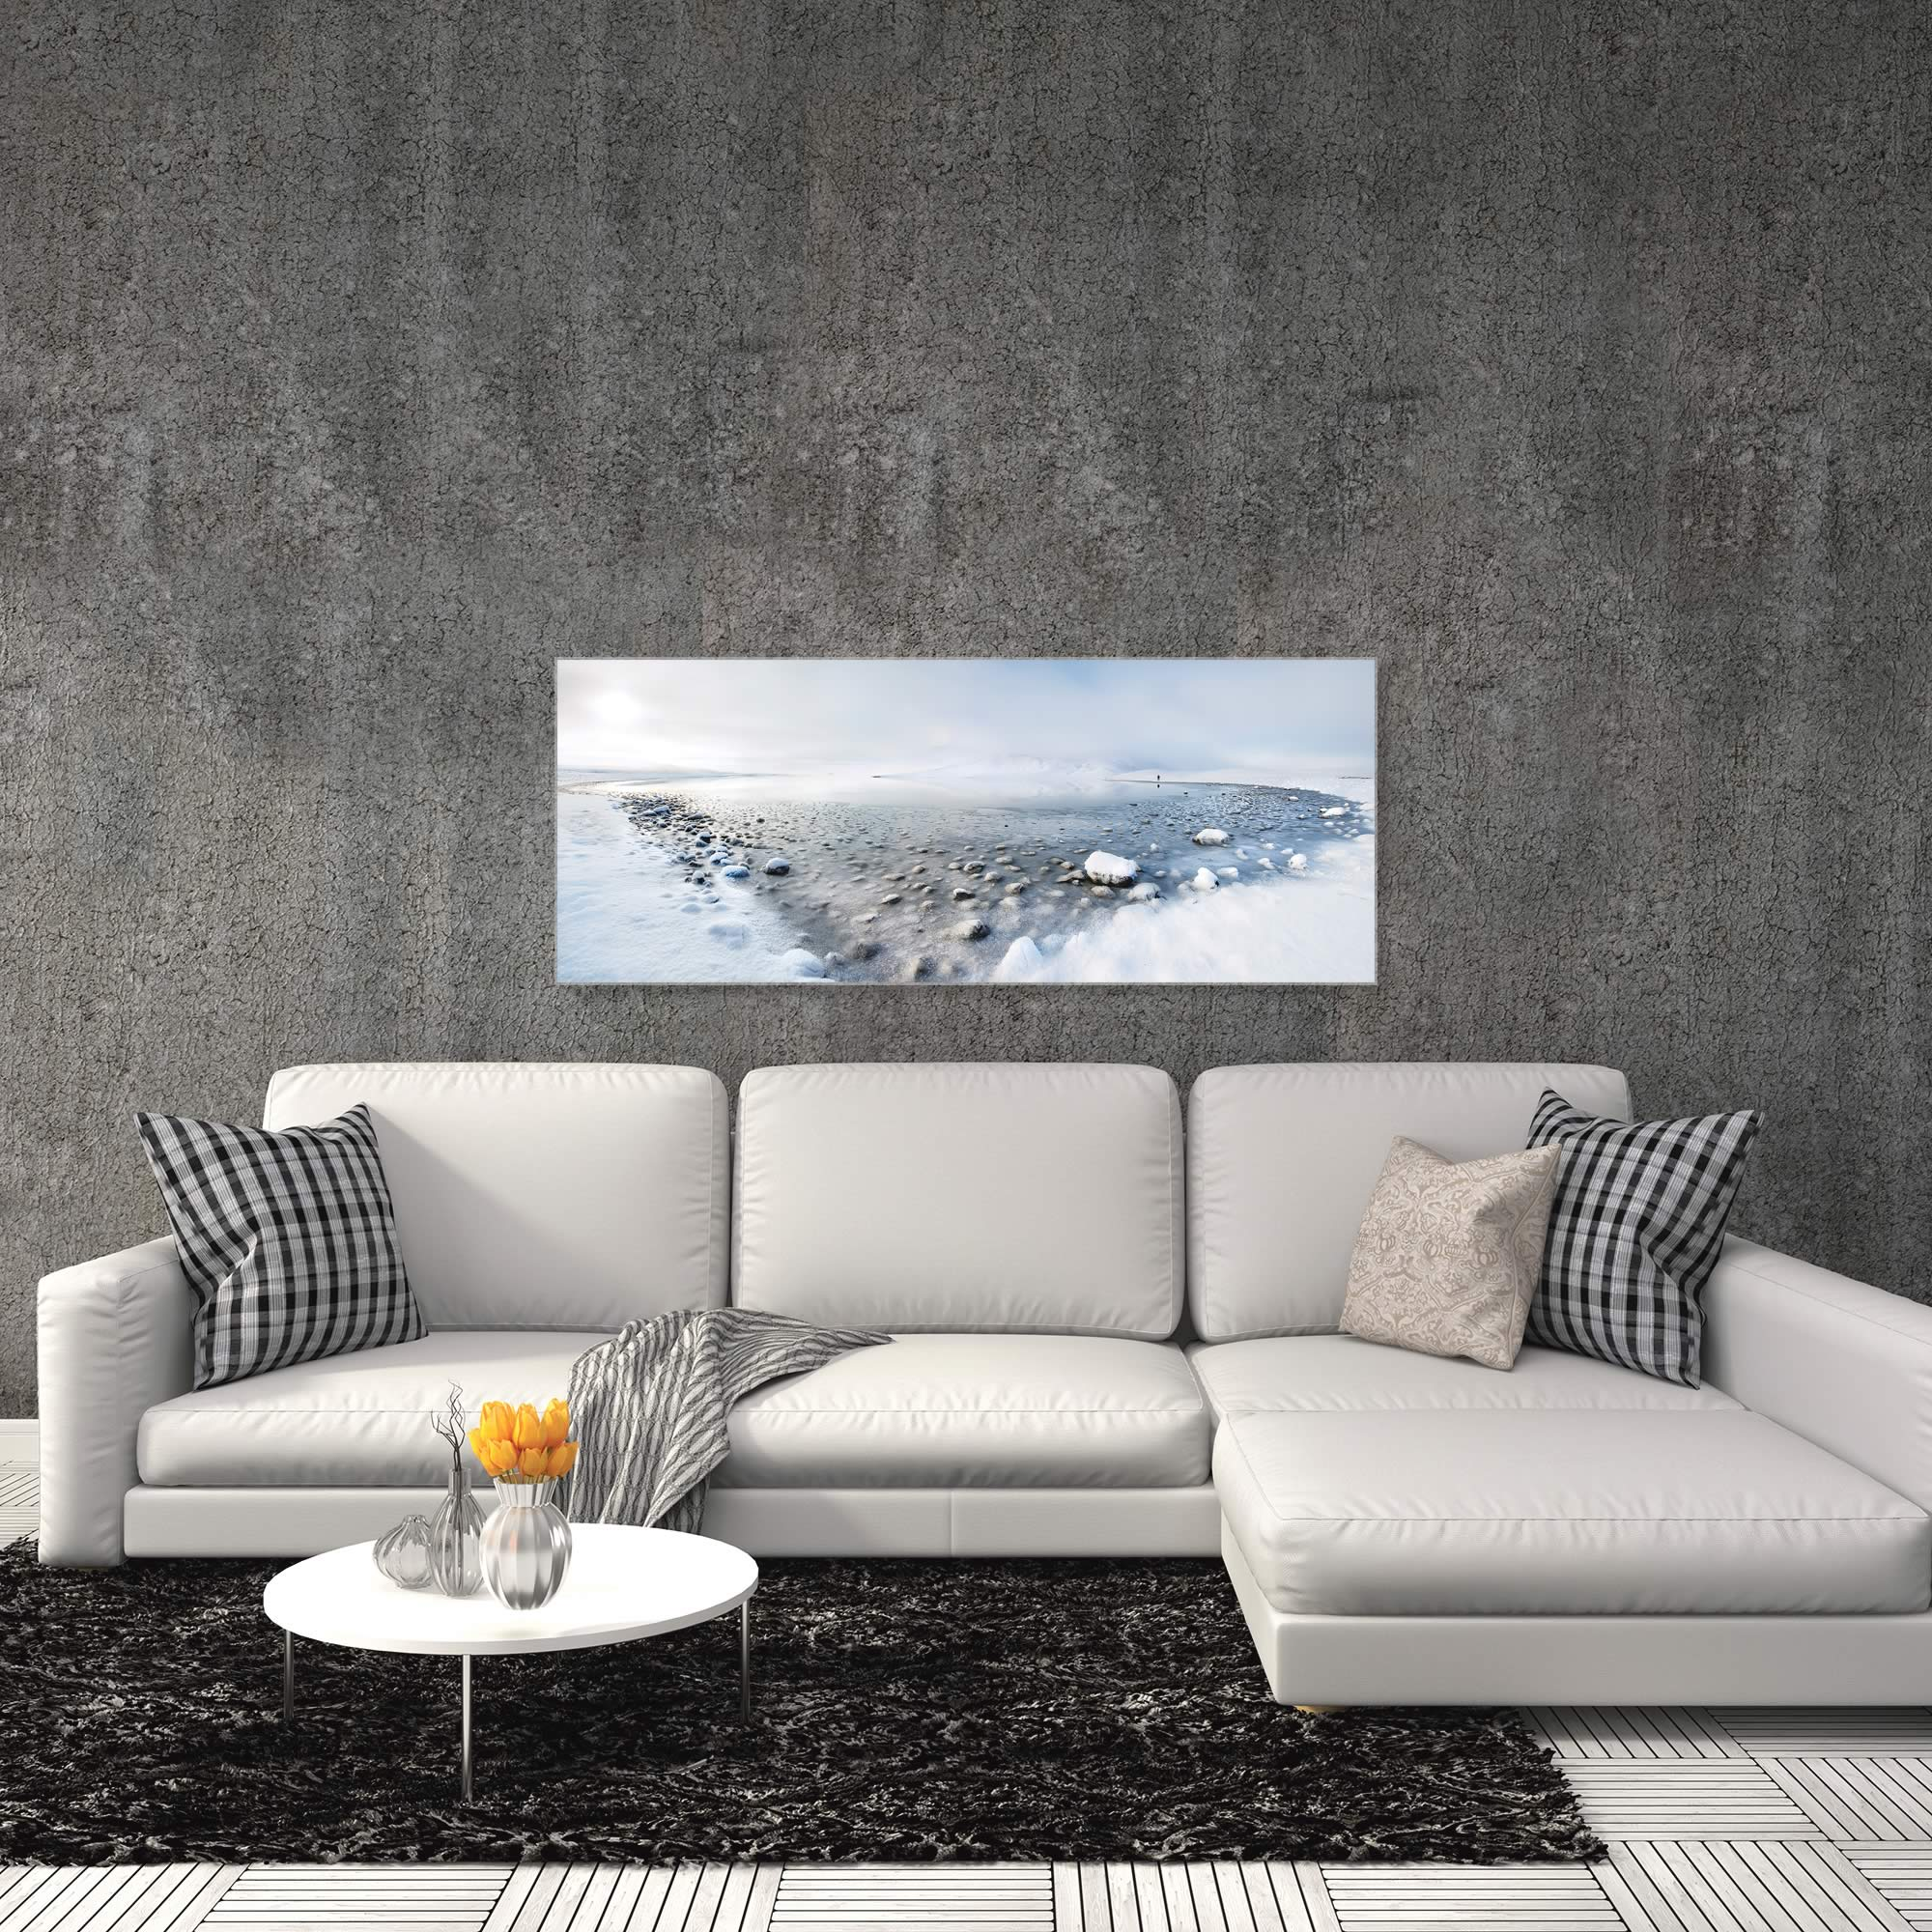 Alone in the Silence by Nicola Molteni - Snowy Landscape Art on Metal or Acrylic - Alternate View 3